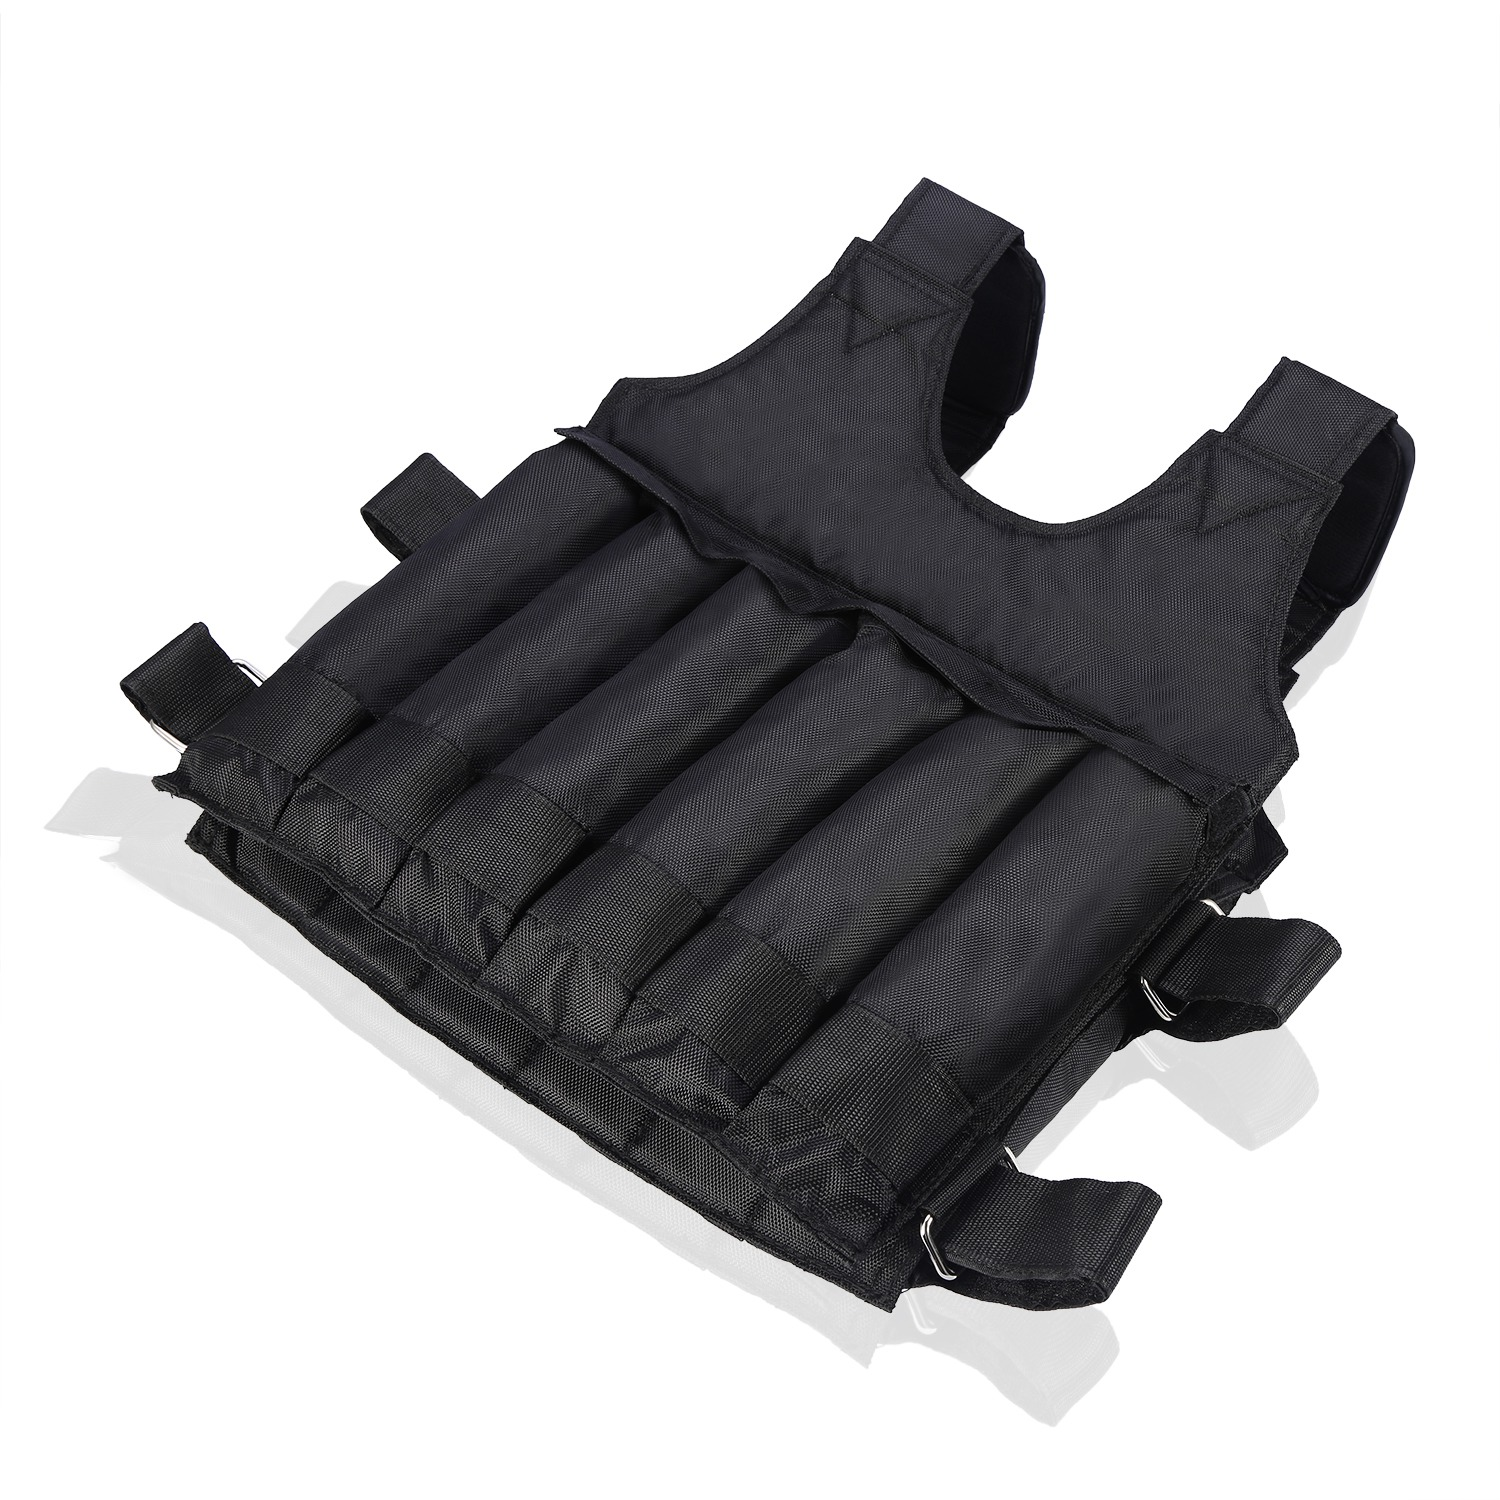 Weighted-Vest-44-110lbs-Weight-Workout-Exercise-Body-Training-Crossfit-Equipment thumbnail 25